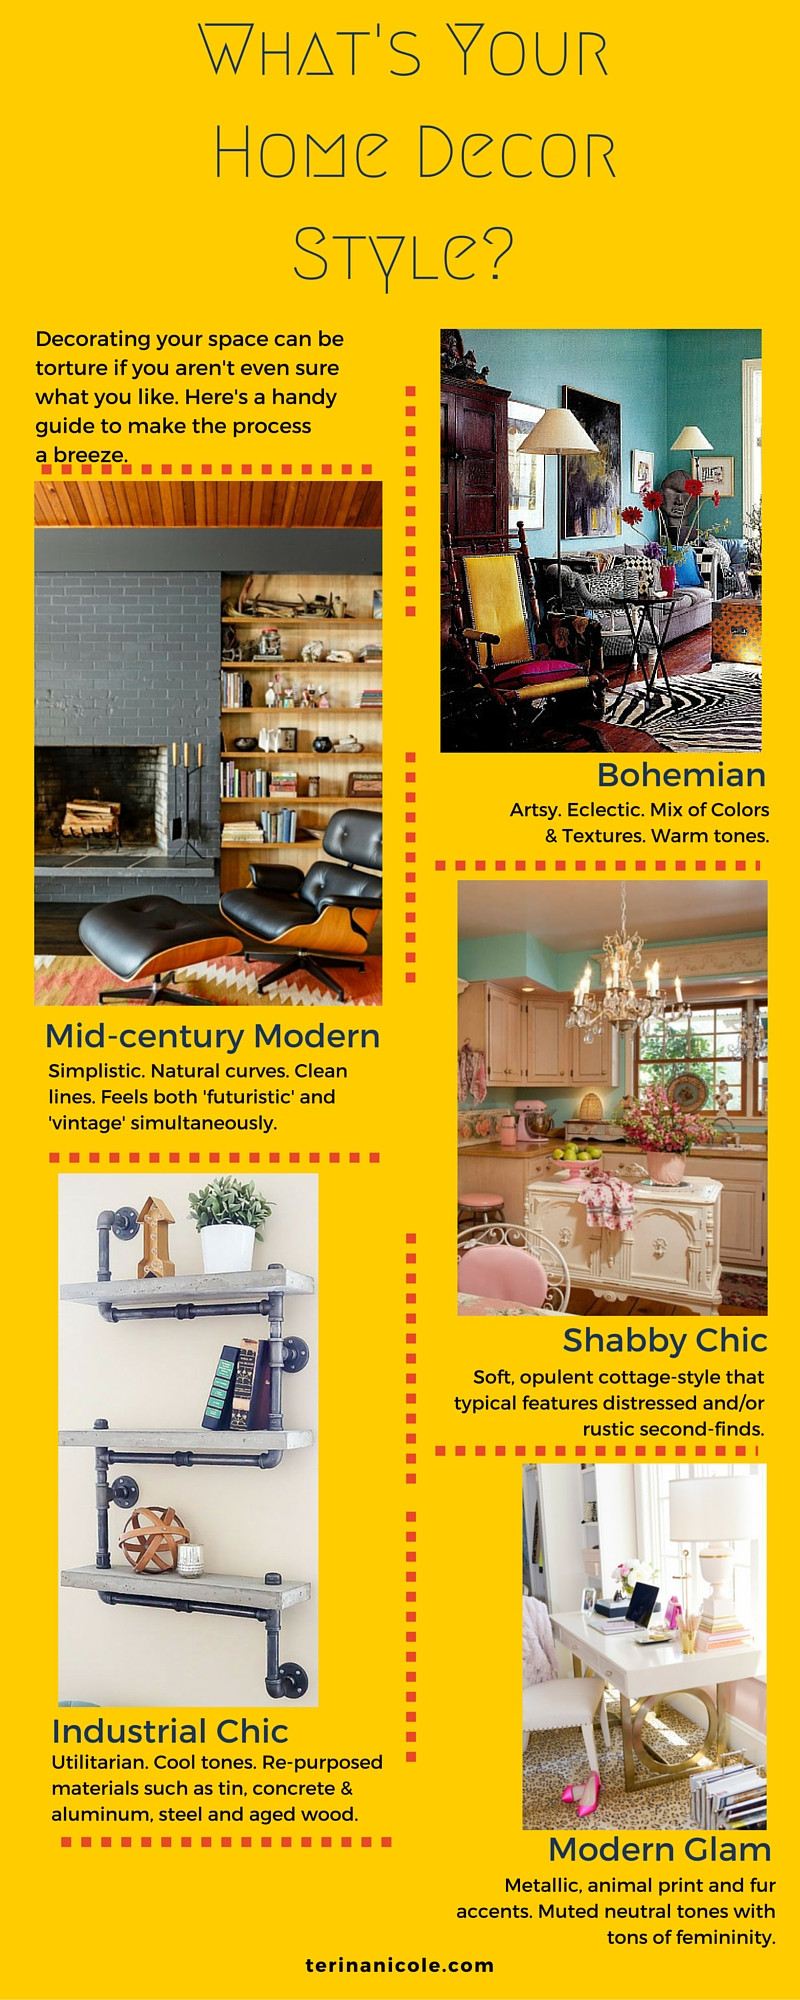 An infographic describing several home decor styles by interior stylist Terina Nicole